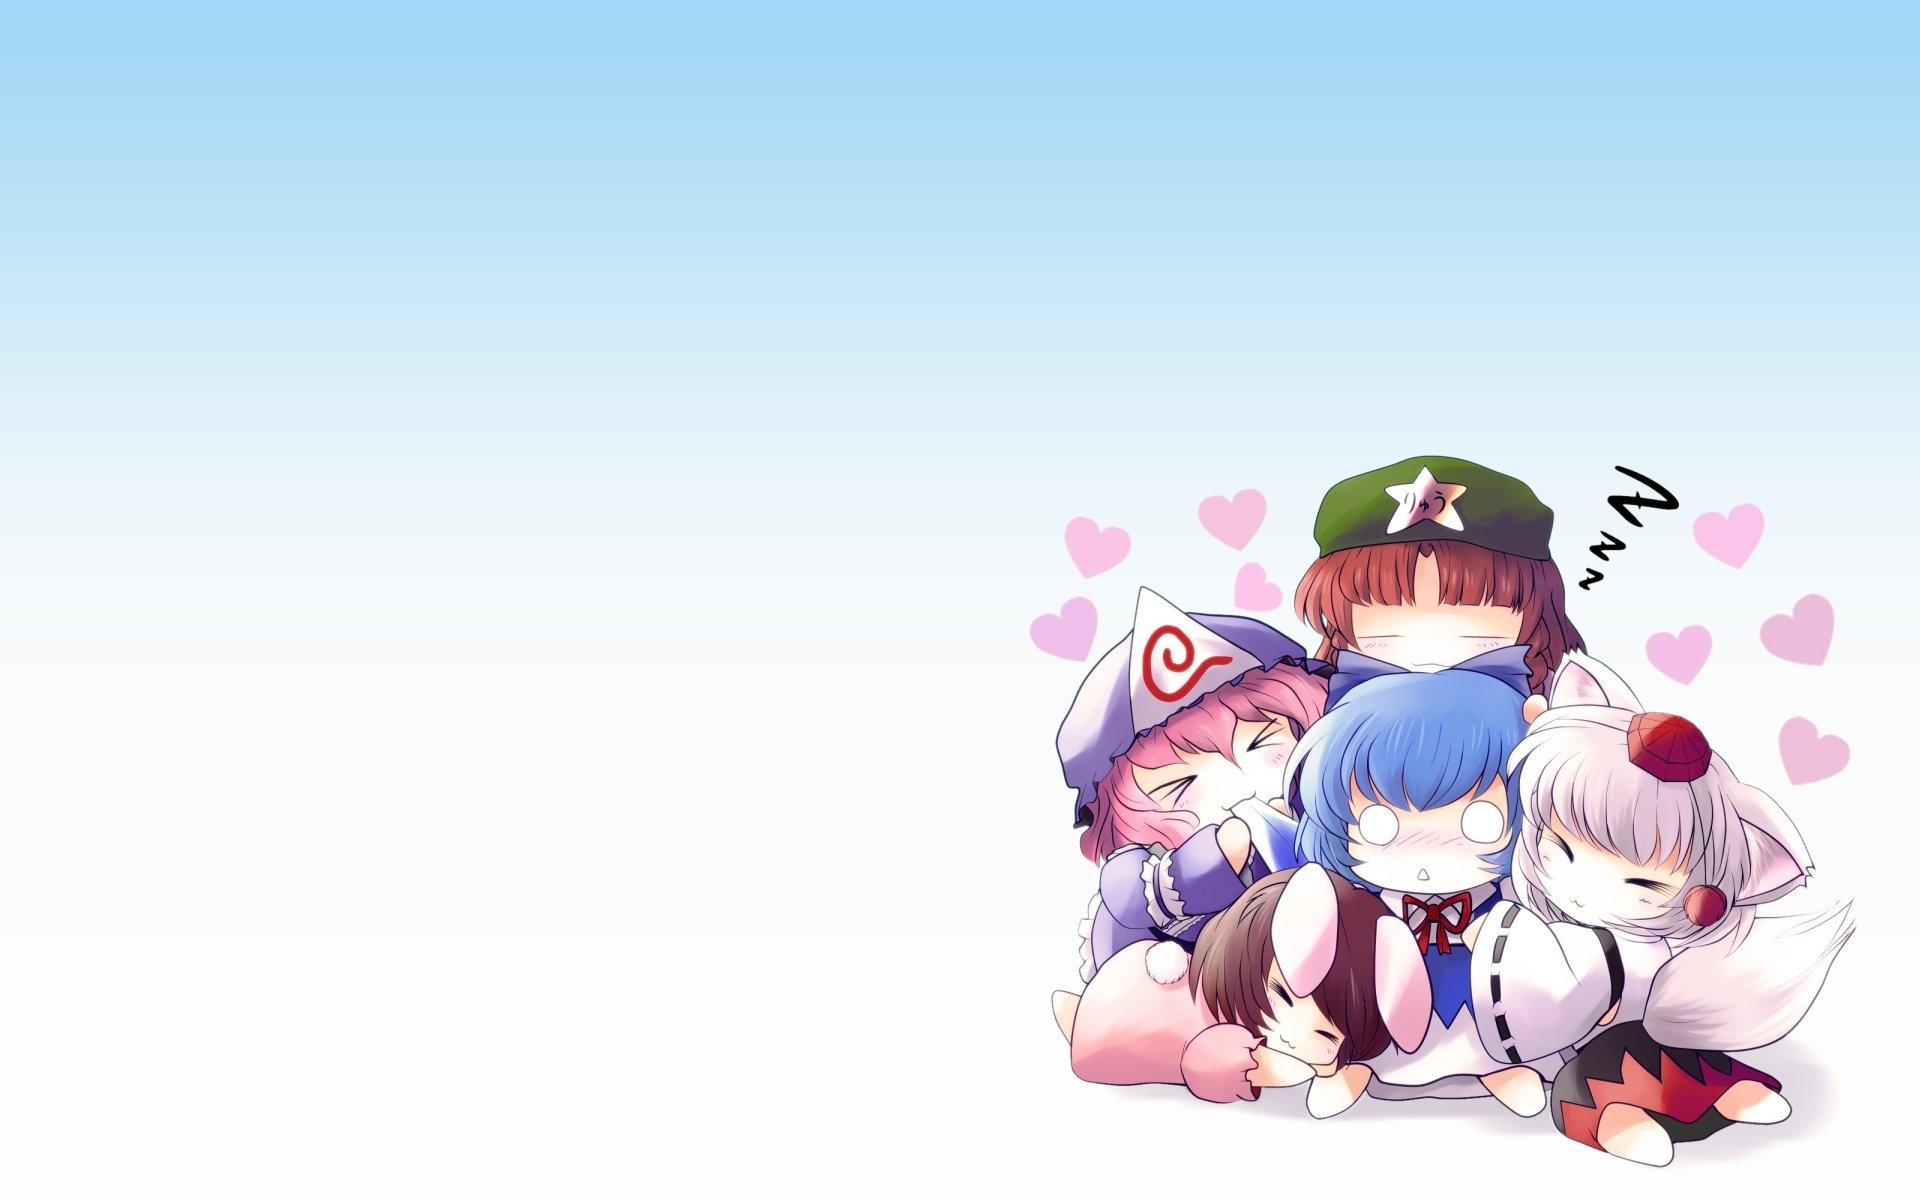 Res: 1920x1200, New Cute Chibi Anime Desktop Wallpaper Gallery - Pokemon Chibi Wallpaper  WallDevil Best free HD desktop